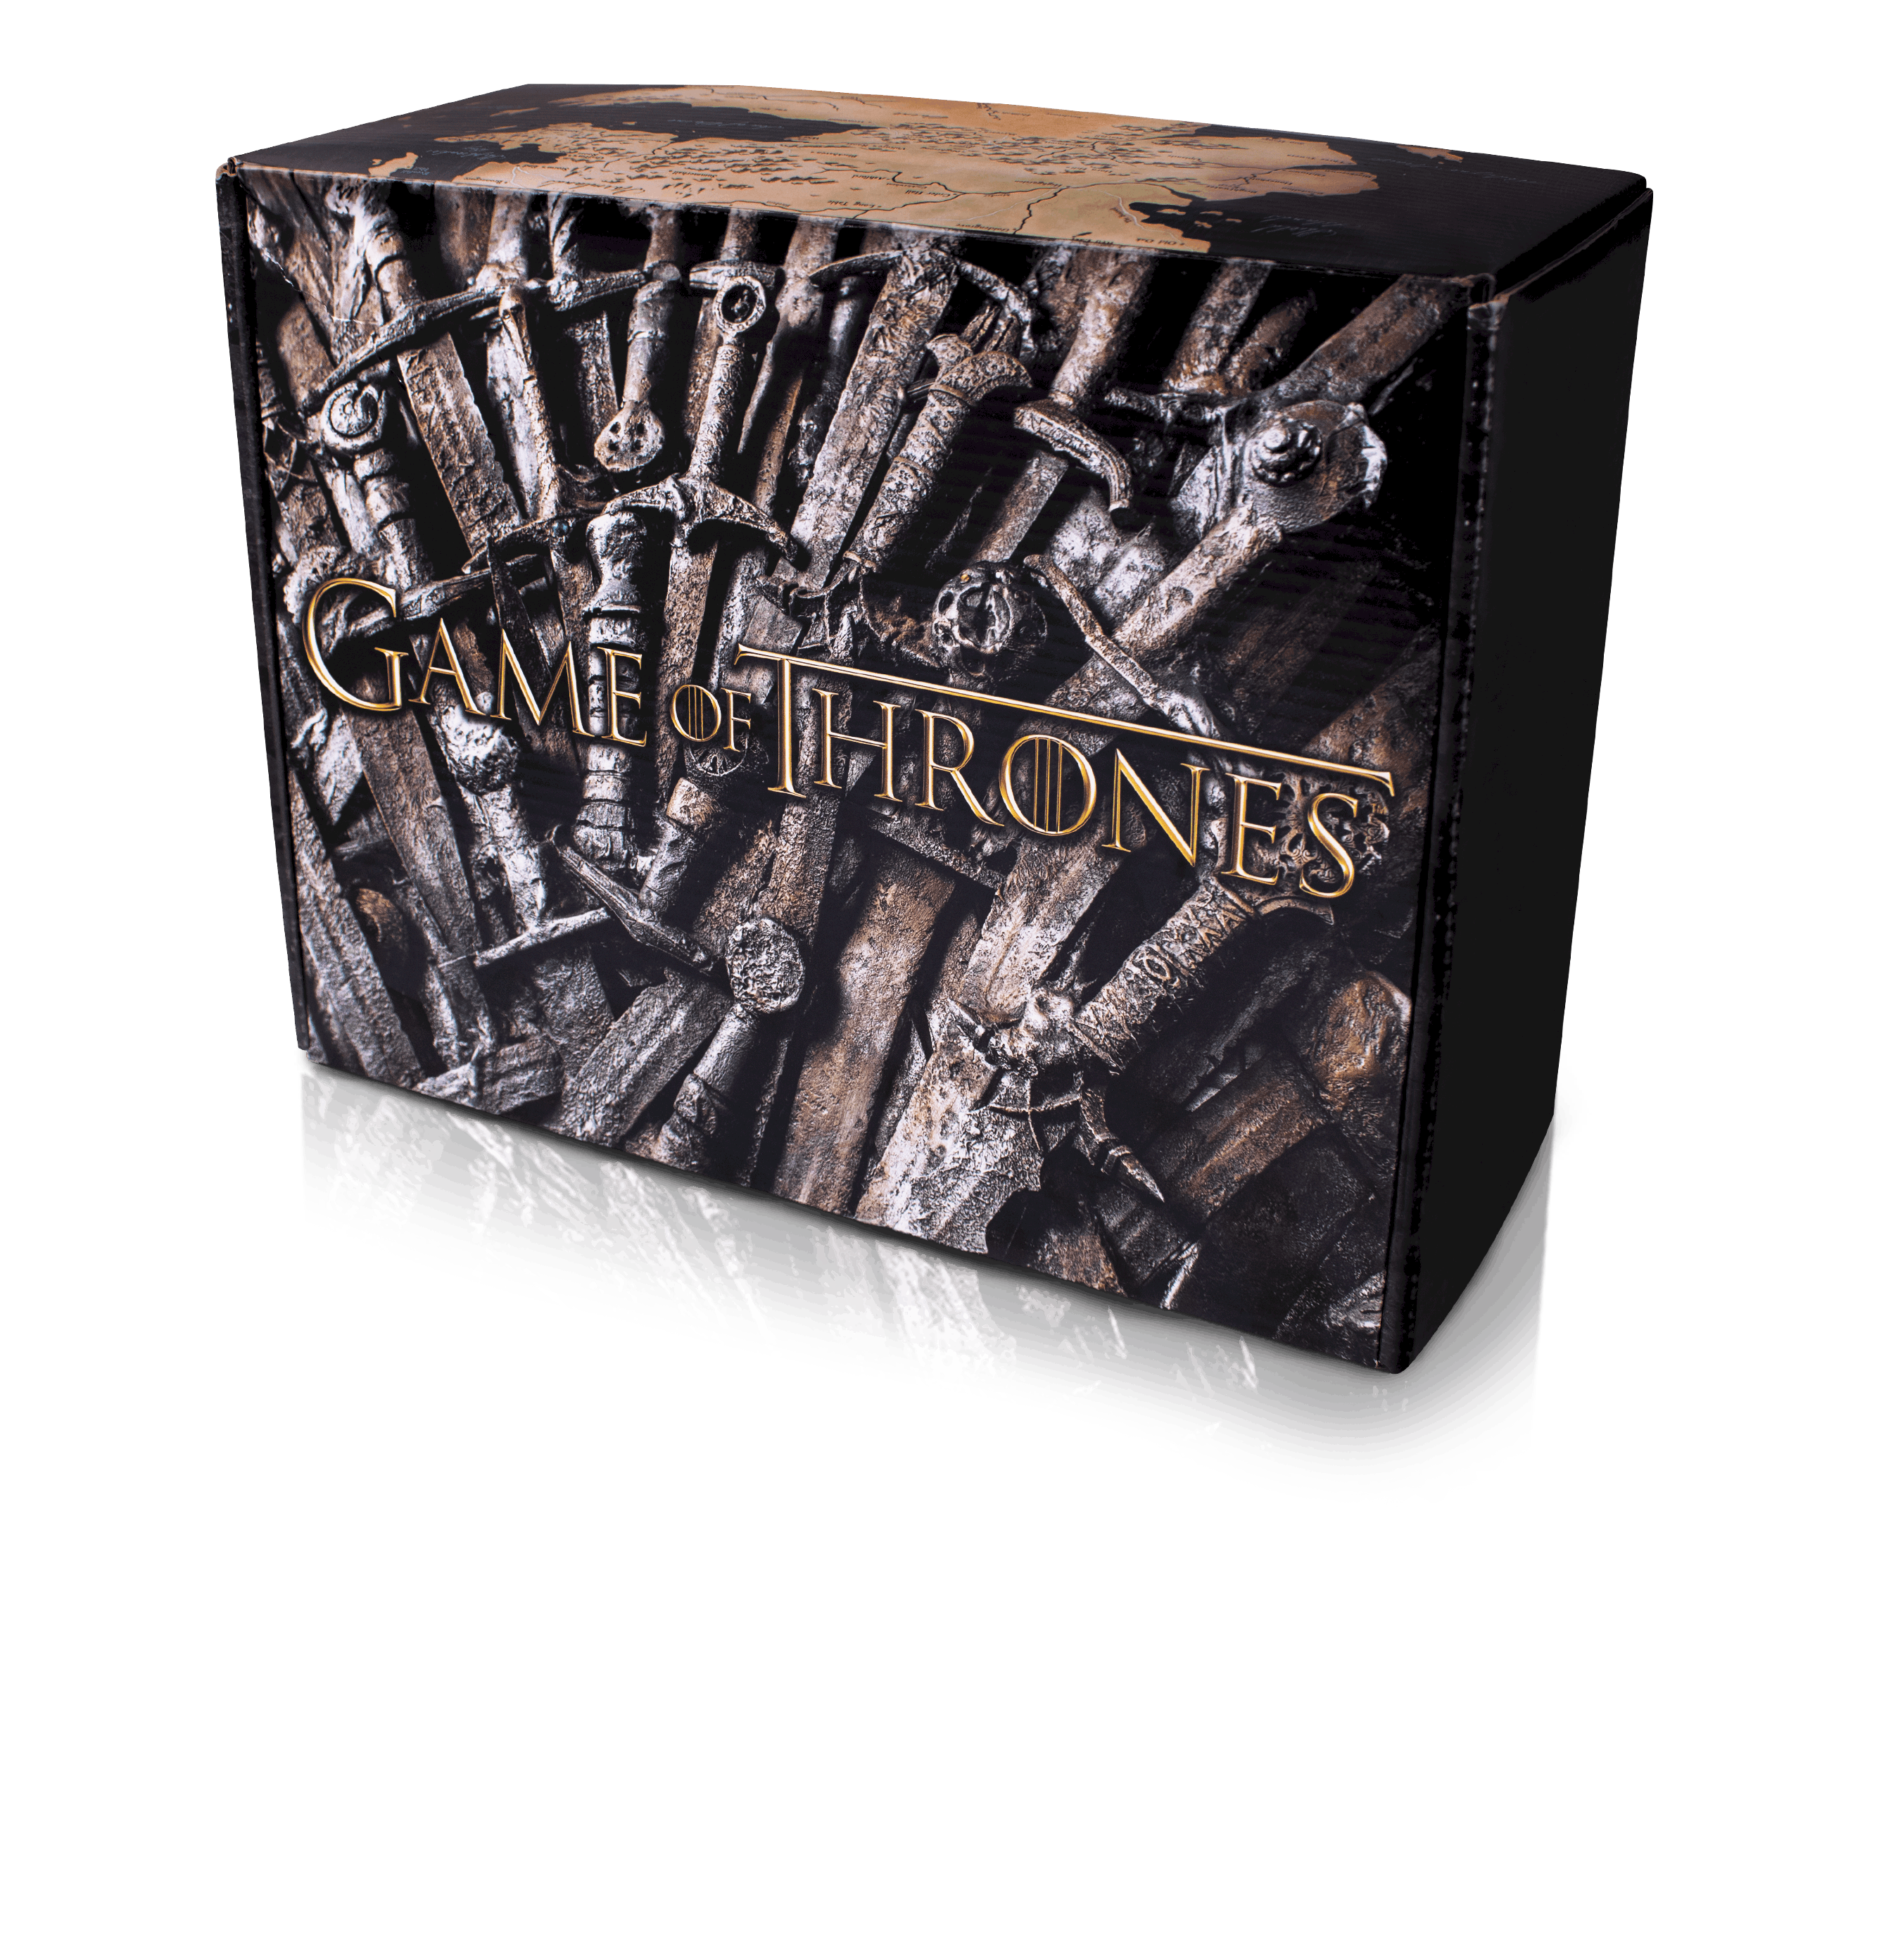 The Game of Thrones Box Spring 2019 Theme Spoilers!